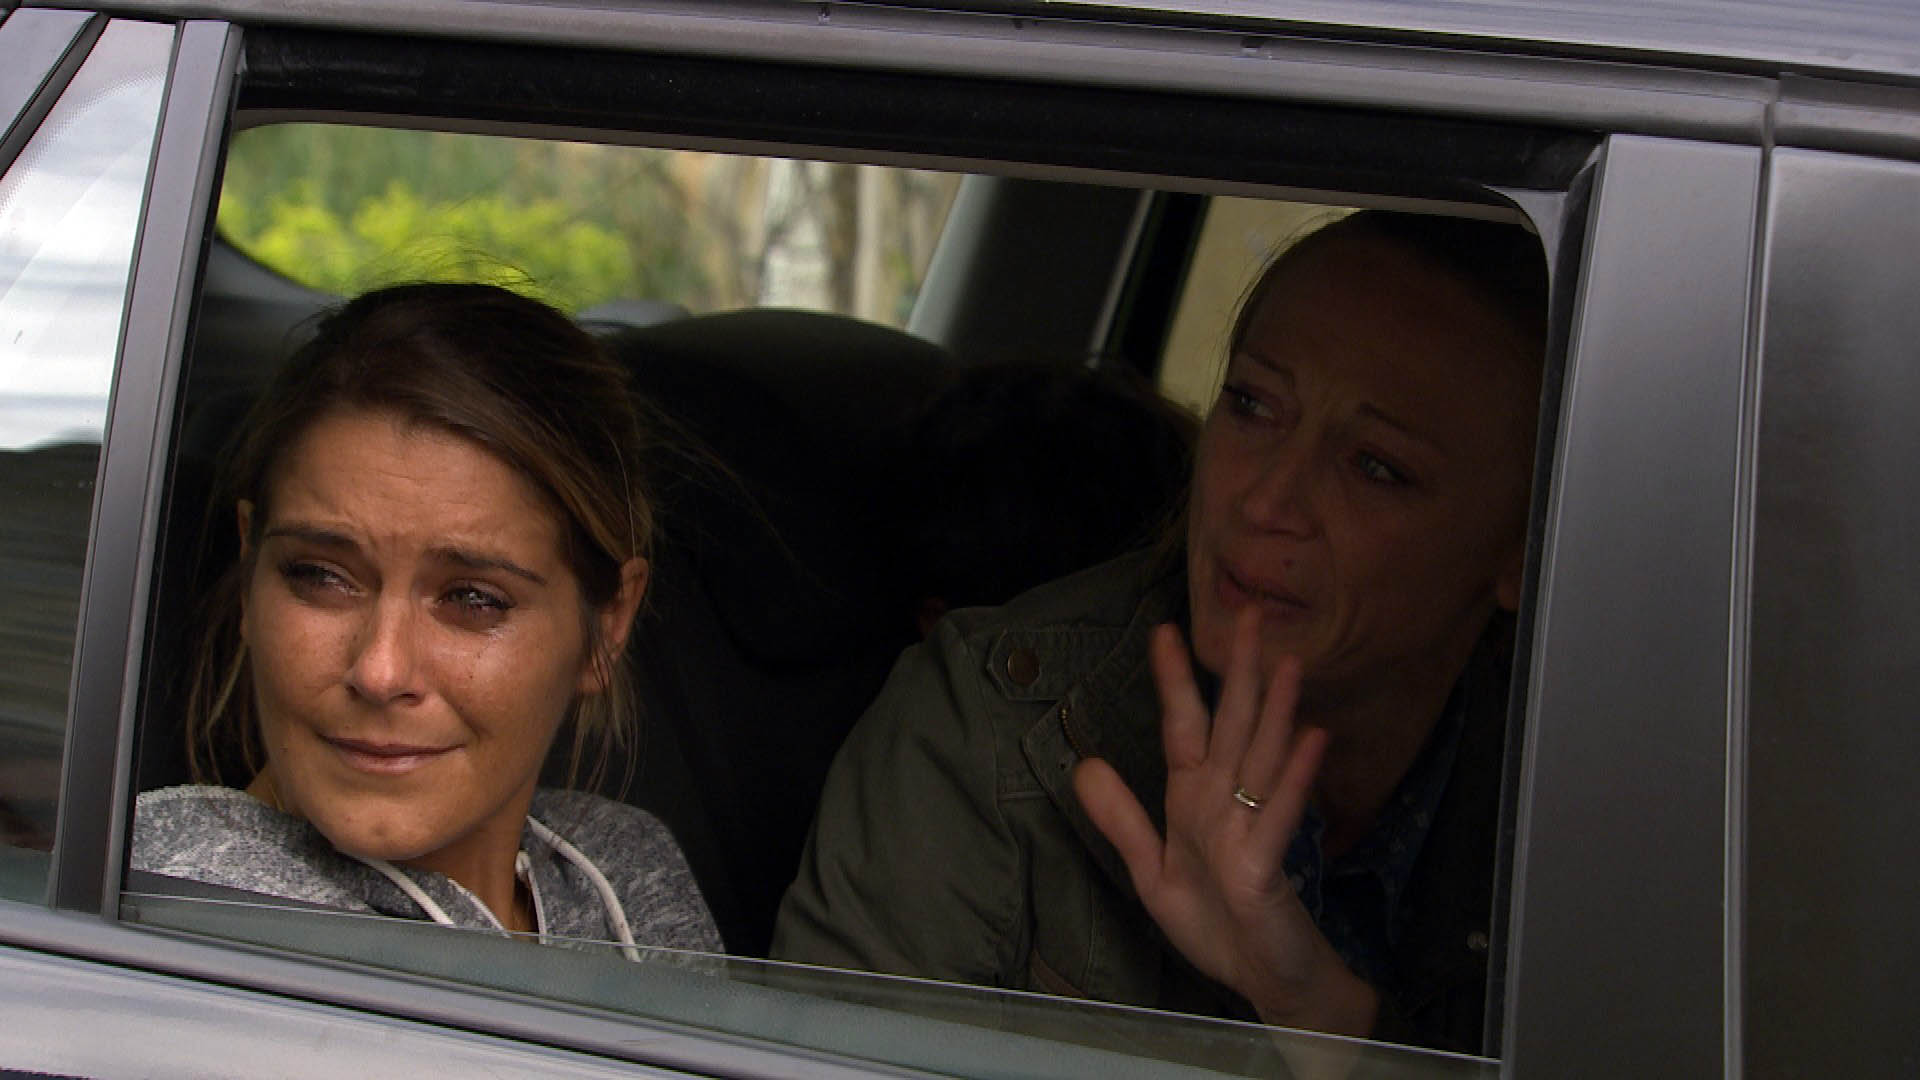 FROM ITV STRICT EMBARGO -No Use Before Sunday 23 August 2015 Emmerdale -  Wednesday 26 August 2015 RACHEL BRECKLE LEAVES THE VILLAGE. Things are awkward between Sam and Rachel and despite knowing itÕs for the best, Sam is devastated to be losing her. Jai is shocked to hear Rachel is moving to Liverpool, but powerless to stop her. Rachel goes to see Megan thanking her for her help, and left shocked when Megan reveals she is still pregnant. Rachel then says her goodbyes. Picture contact: david.crook@itv.com on 0161 952 6214 This photograph is (C) ITV Plc and can only be reproduced for editorial purposes directly in connection with the programme or event mentioned above, or ITV plc. Once made available by ITV plc Picture Desk, this photograph can be reproduced once only up until the transmission [TX] date and no reproduction fee will be charged. Any subsequent usage may incur a fee. This photograph must not be manipulated [excluding basic cropping] in a manner which alters the visual appearance of the person photographed deemed detrimental or inappropriate by ITV plc Picture Desk. This photograph must not be syndicated to any other company, publication or website, or permanently archived, without the express written permission of ITV Plc Picture Desk. Full Terms and conditions are available on the website www.itvpictures.com